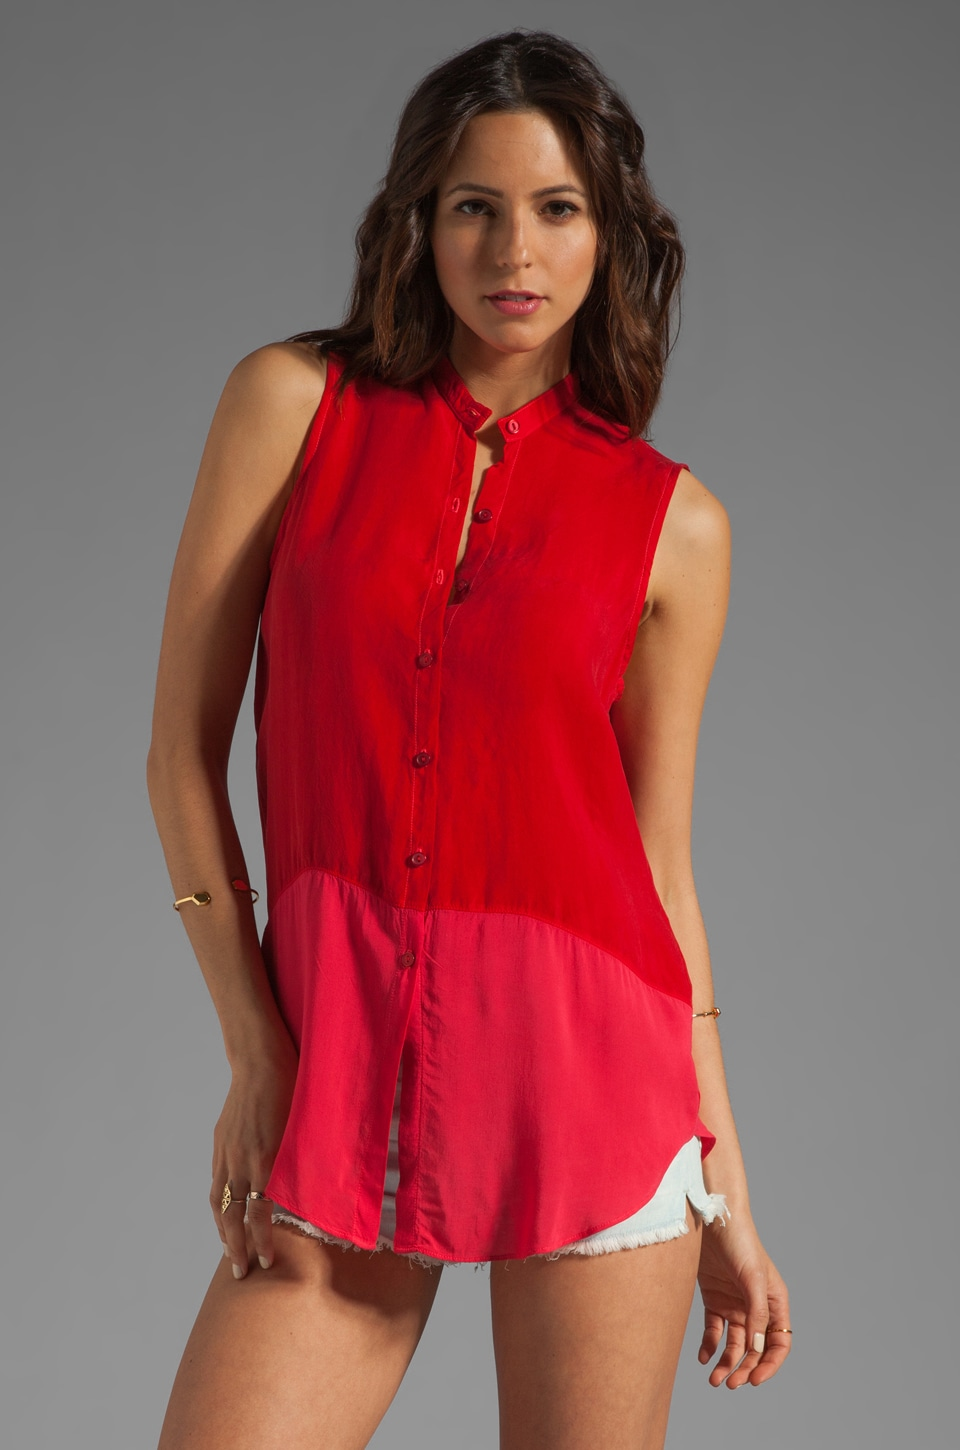 Feel the Piece Louis Button Down Tank in Valentino